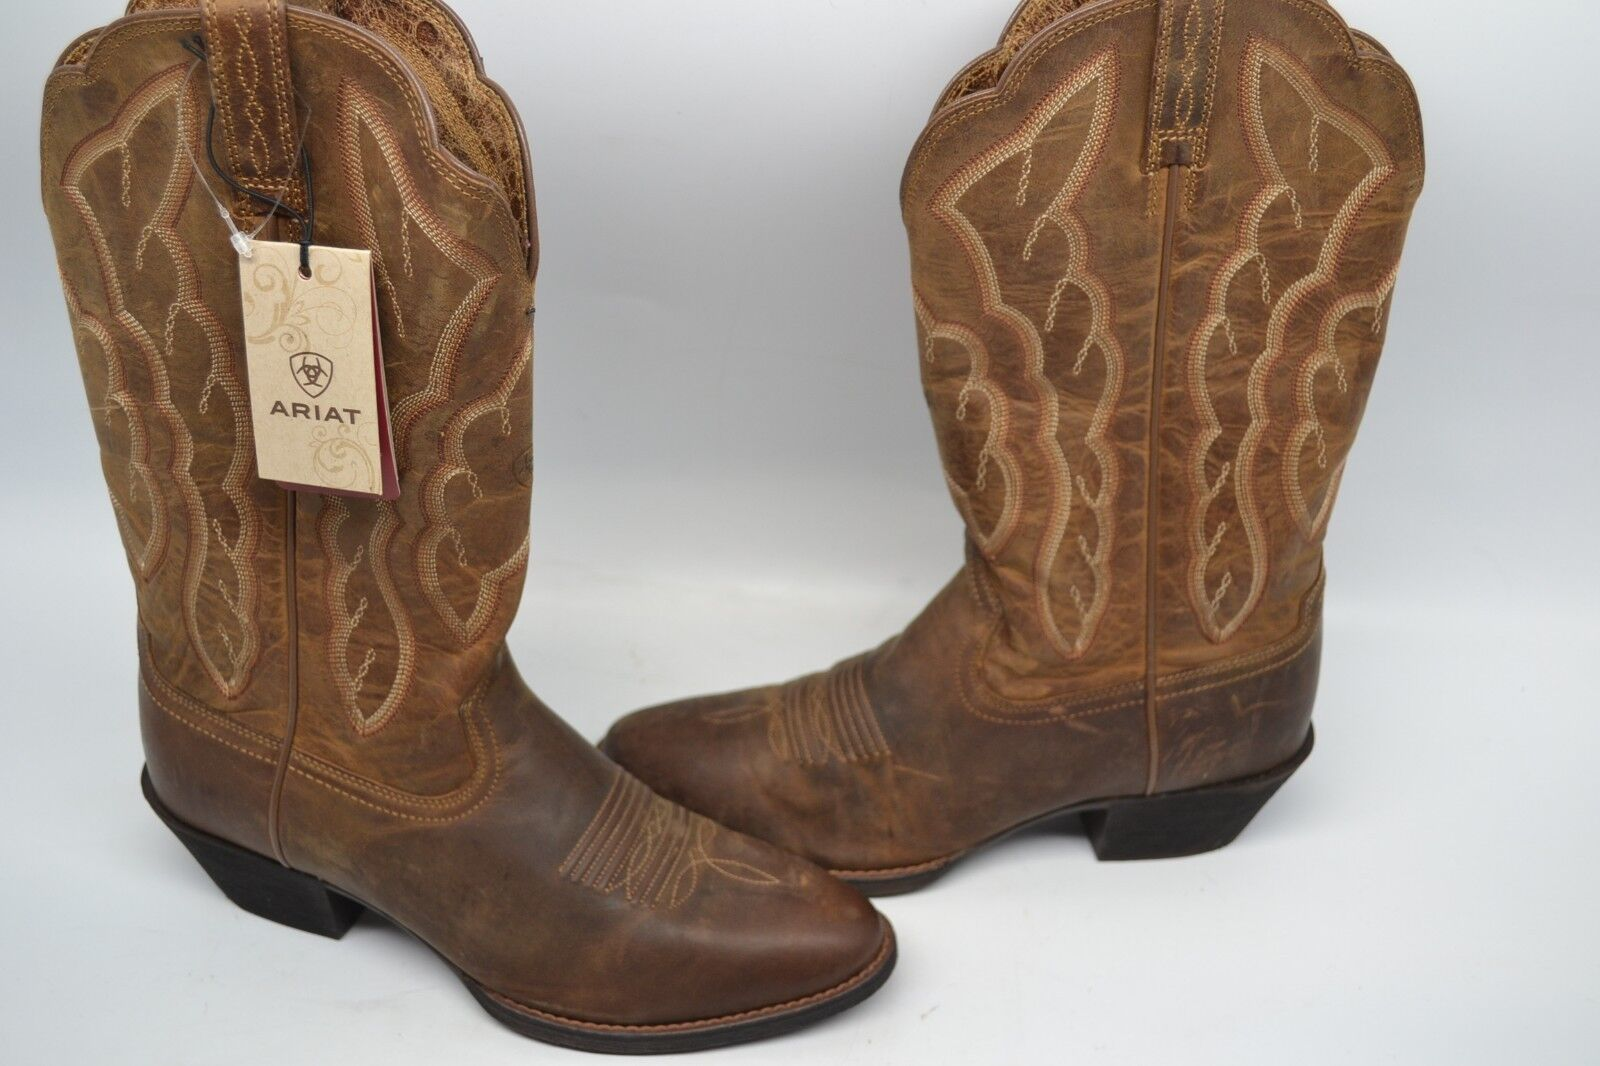 Ariat donna 6.5 B Heritage R Toe Cowboy Western avvio Distressed Marronee 10020289